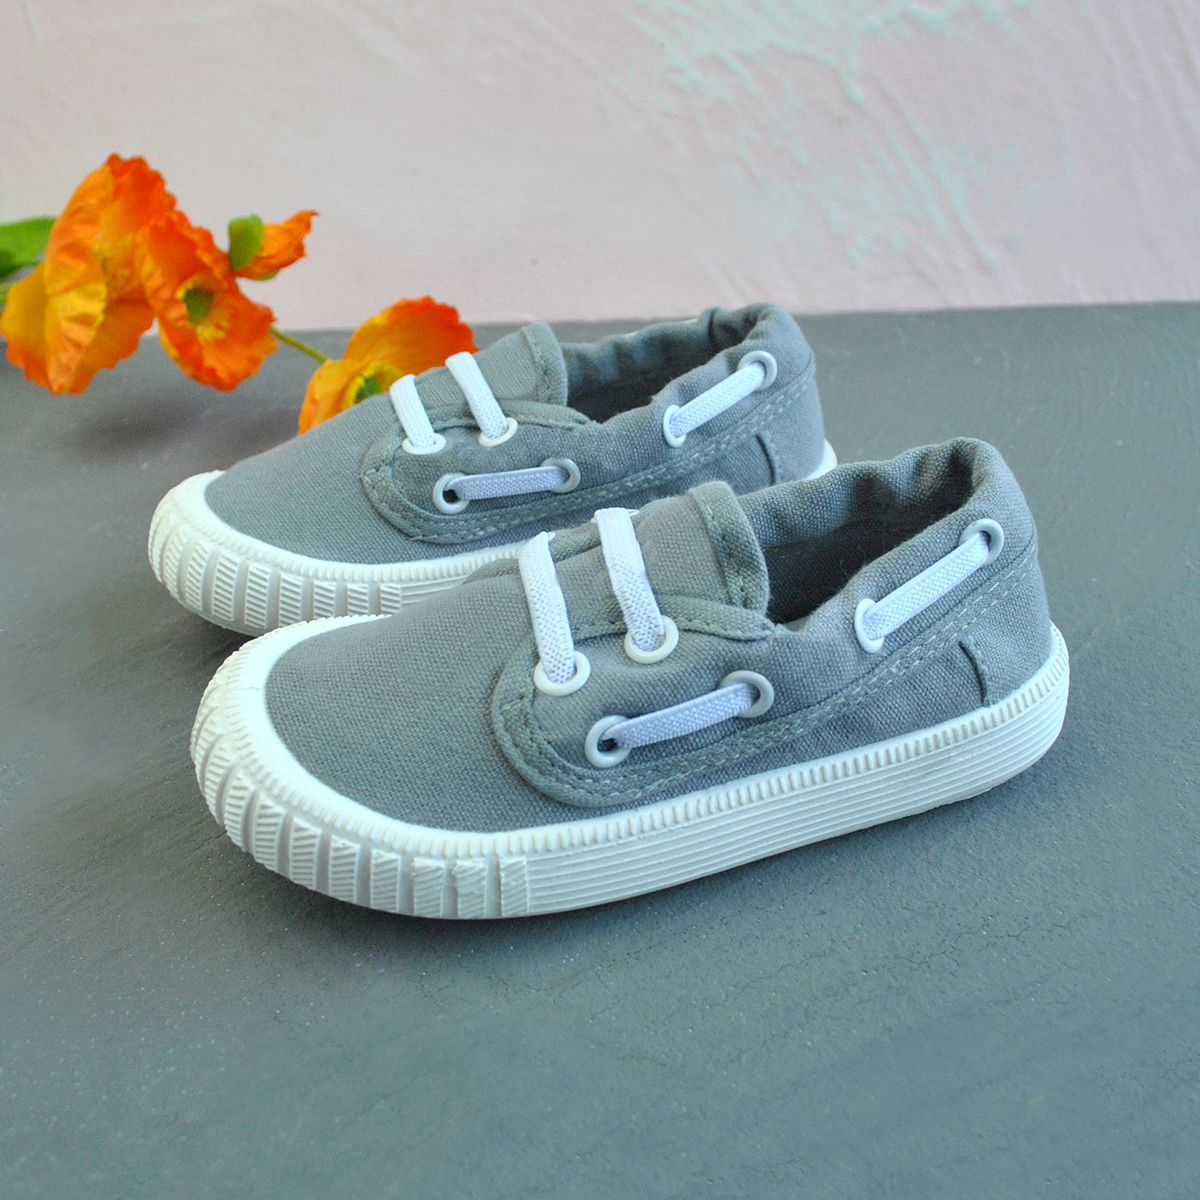 Toddler Boys Lace-up Front Sneakers